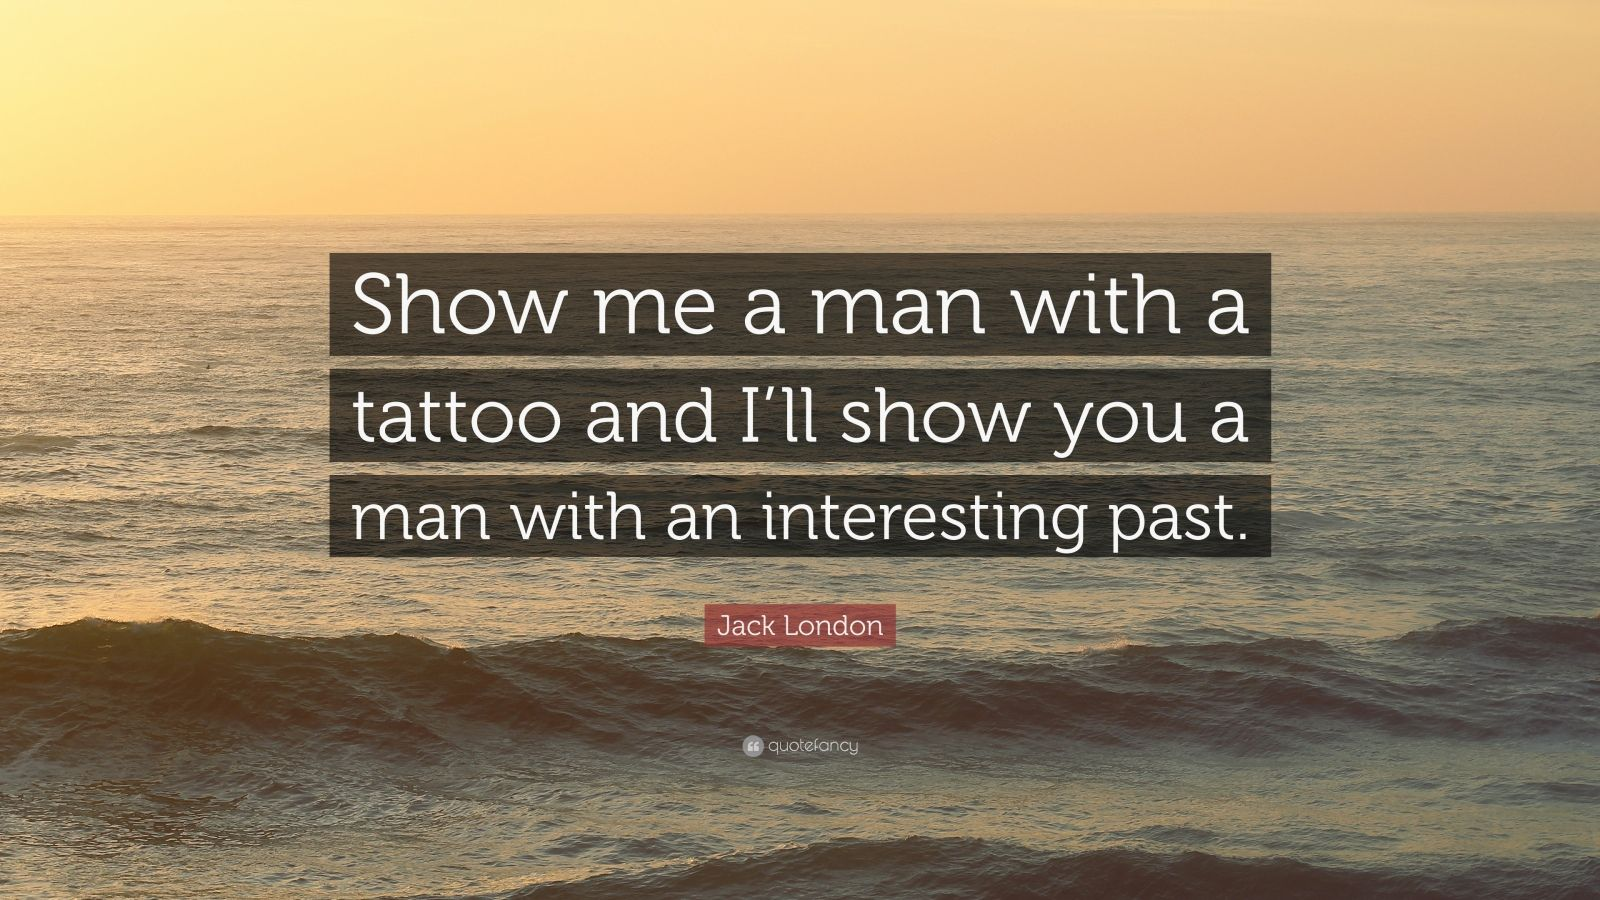 """Jack London Quote: """"Show me a man with a tattoo and I'll show you a man with an interesting past."""""""